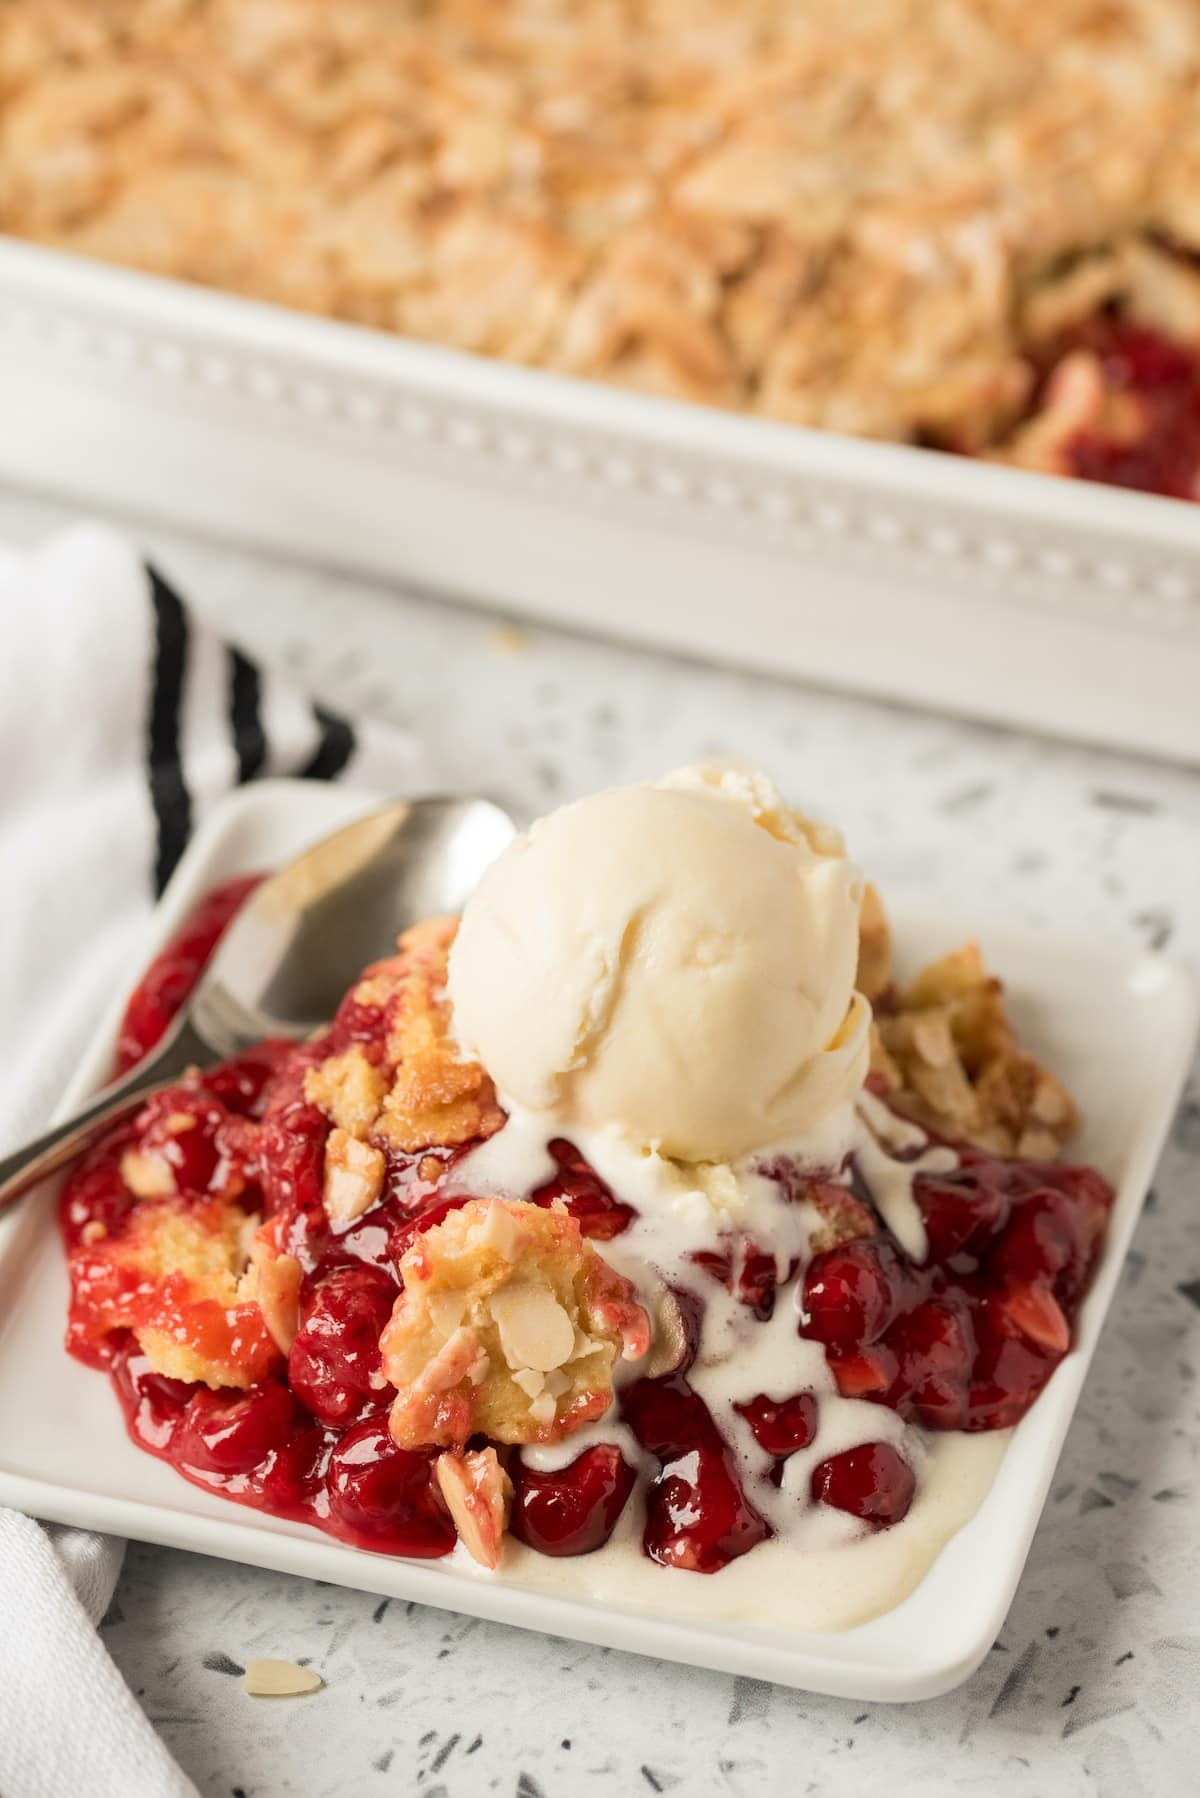 cherry dump cake on a plate served with ice cream